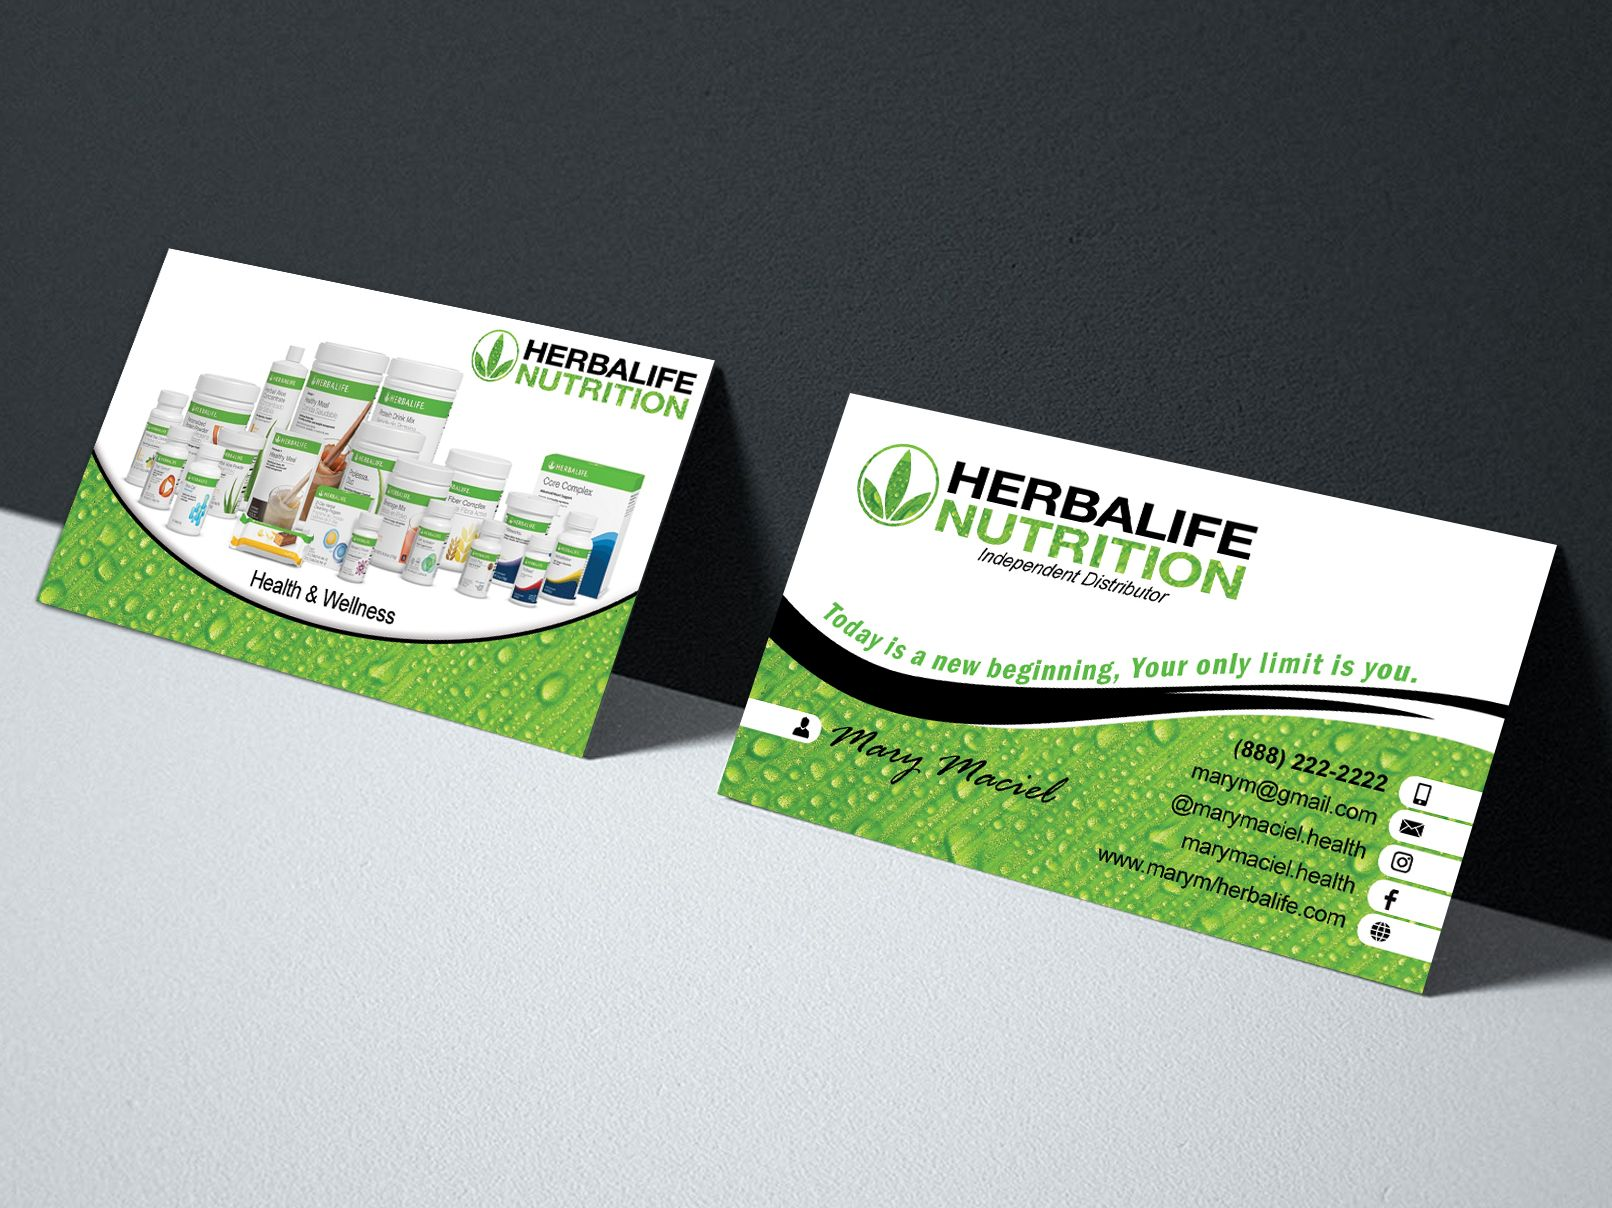 Herbalife Business Cards Design Template Health Fitness 24 Hours Prints Coach